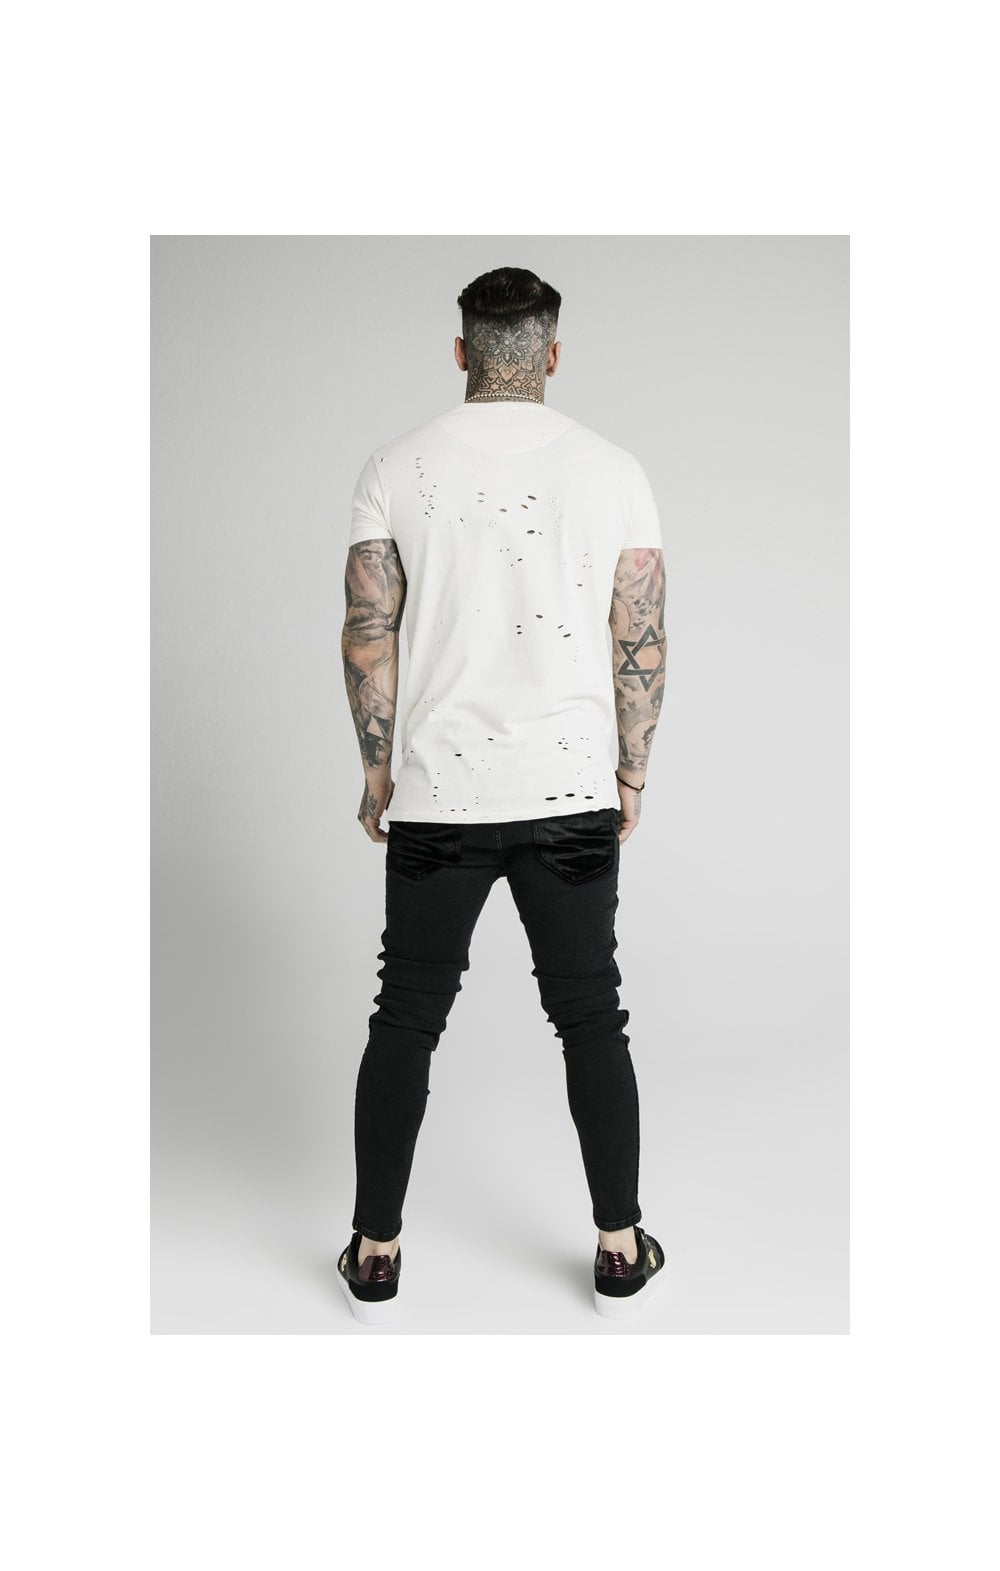 SikSilk S/S Distressed Box Tee - Off White (5)